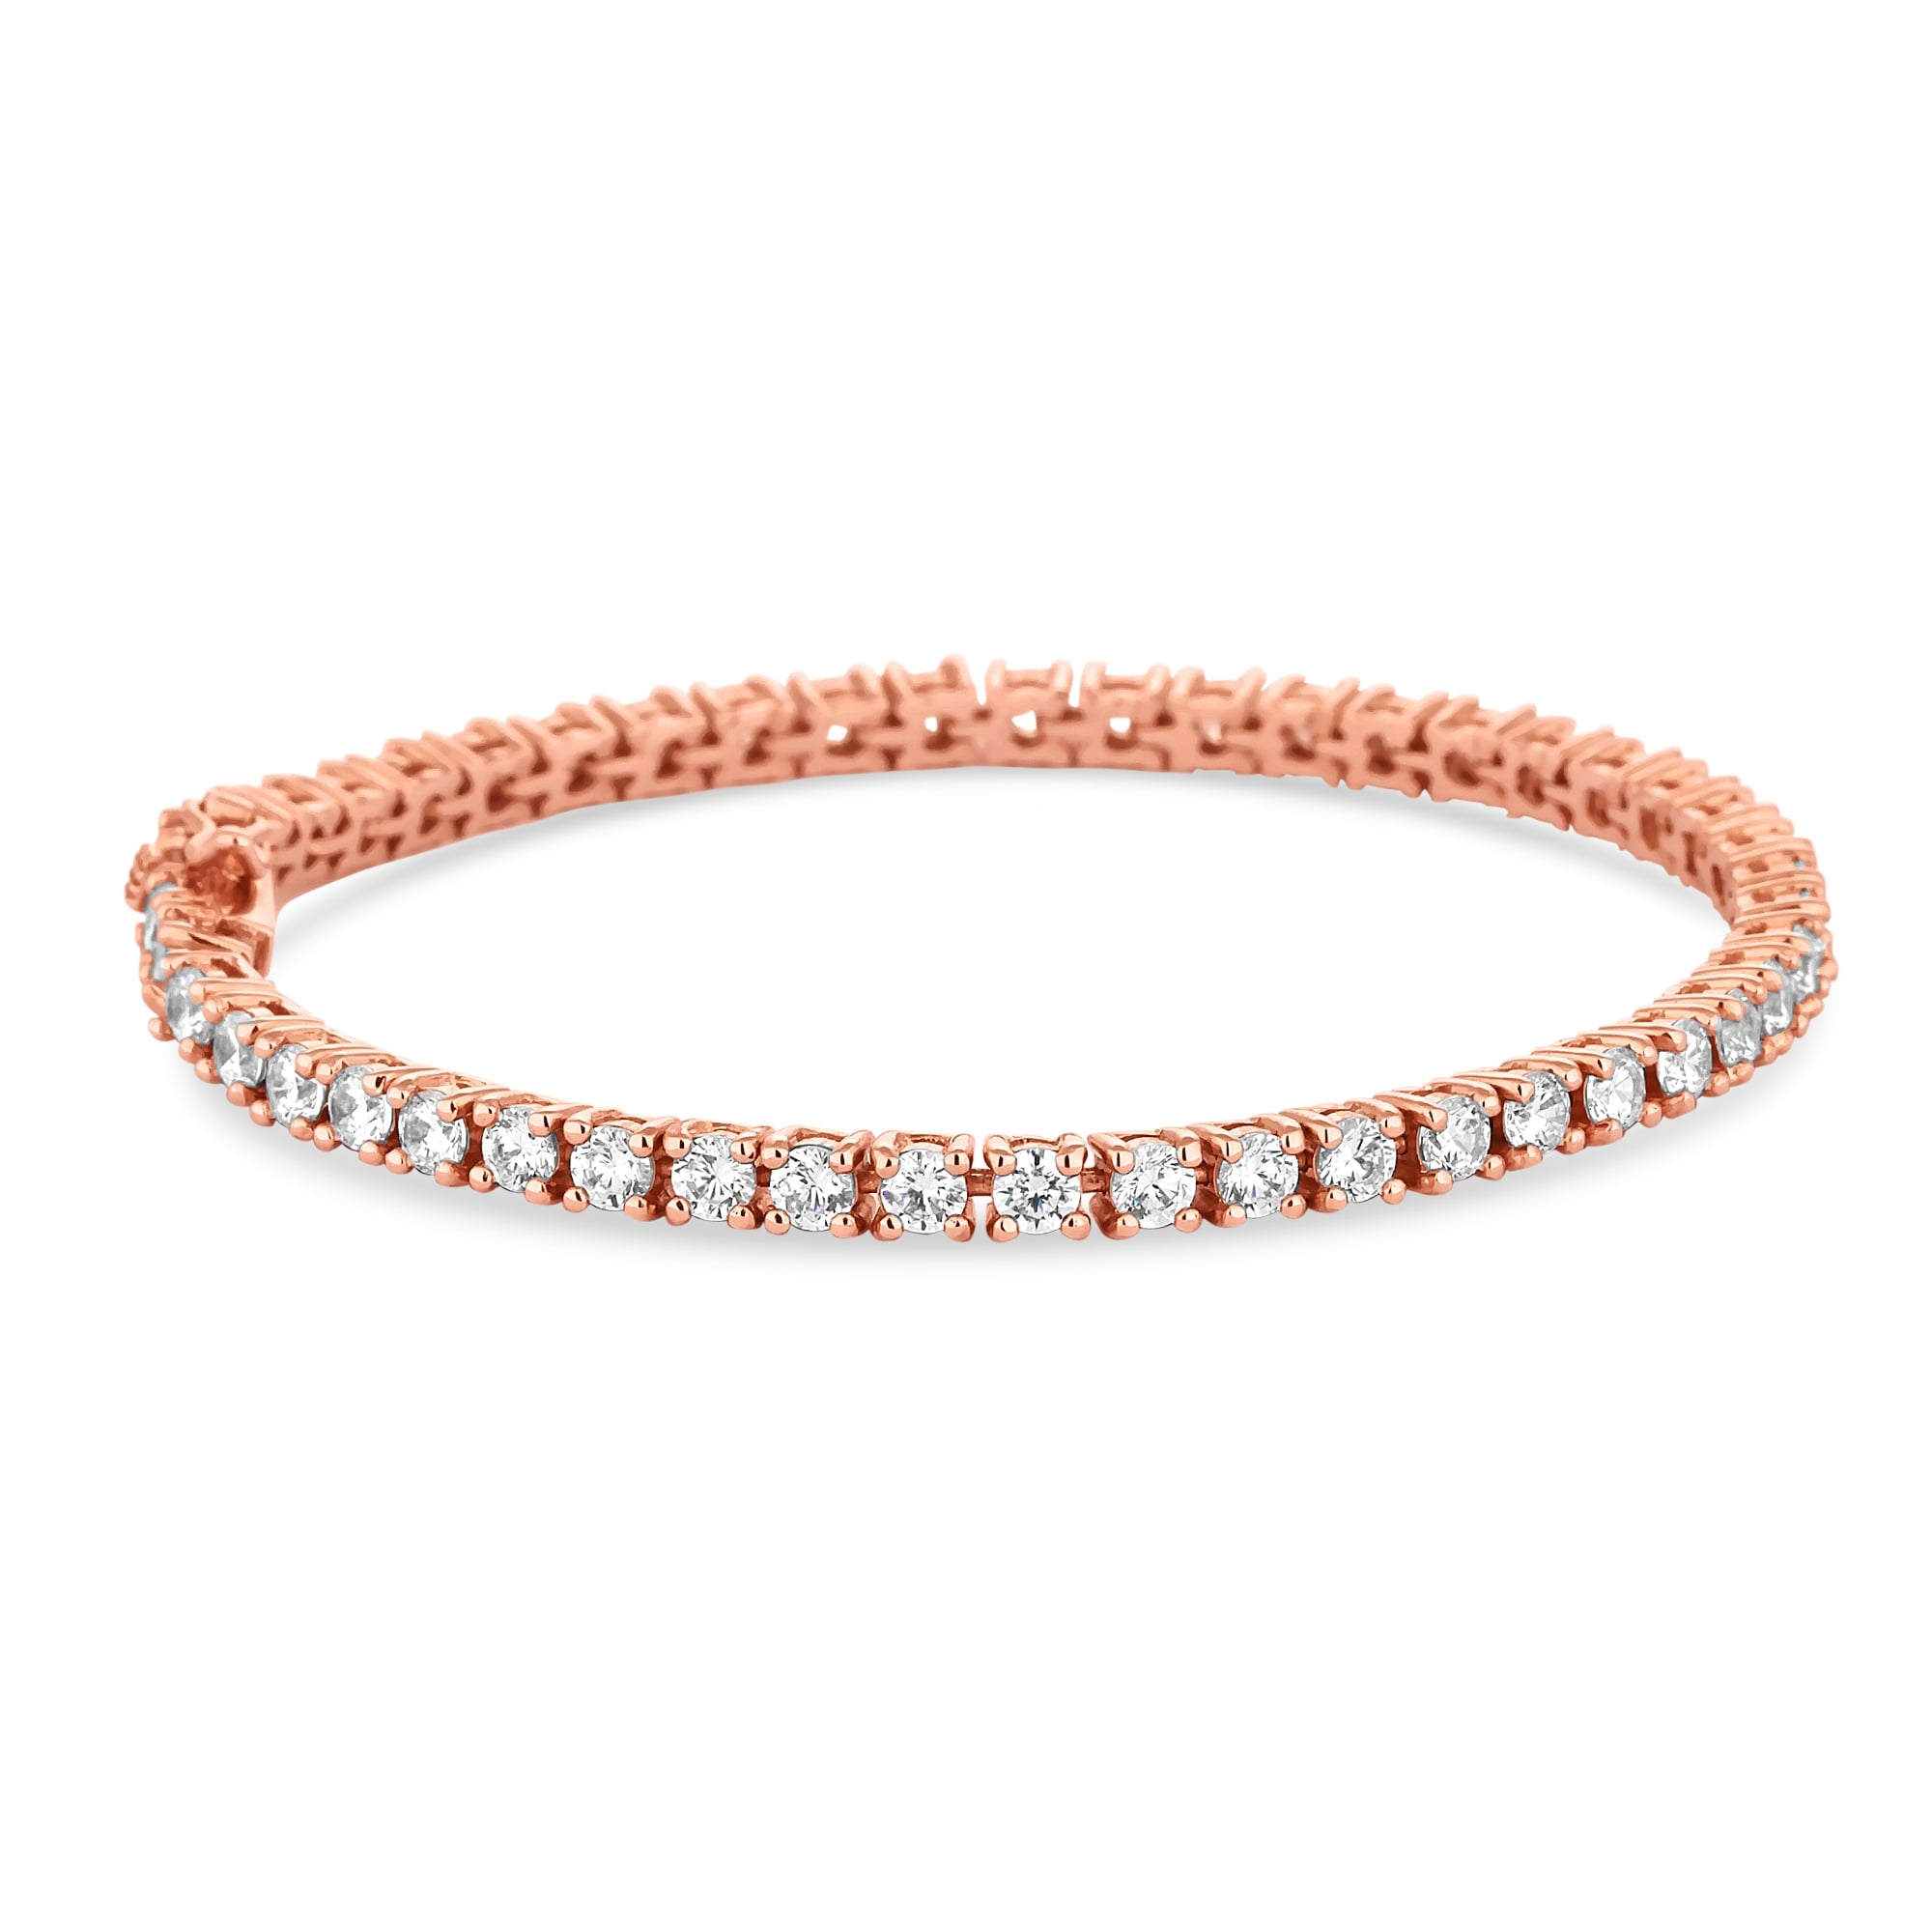 pave bracelet archives bracelets anklet coster tennis rg diamond diamonds yg band polished royal